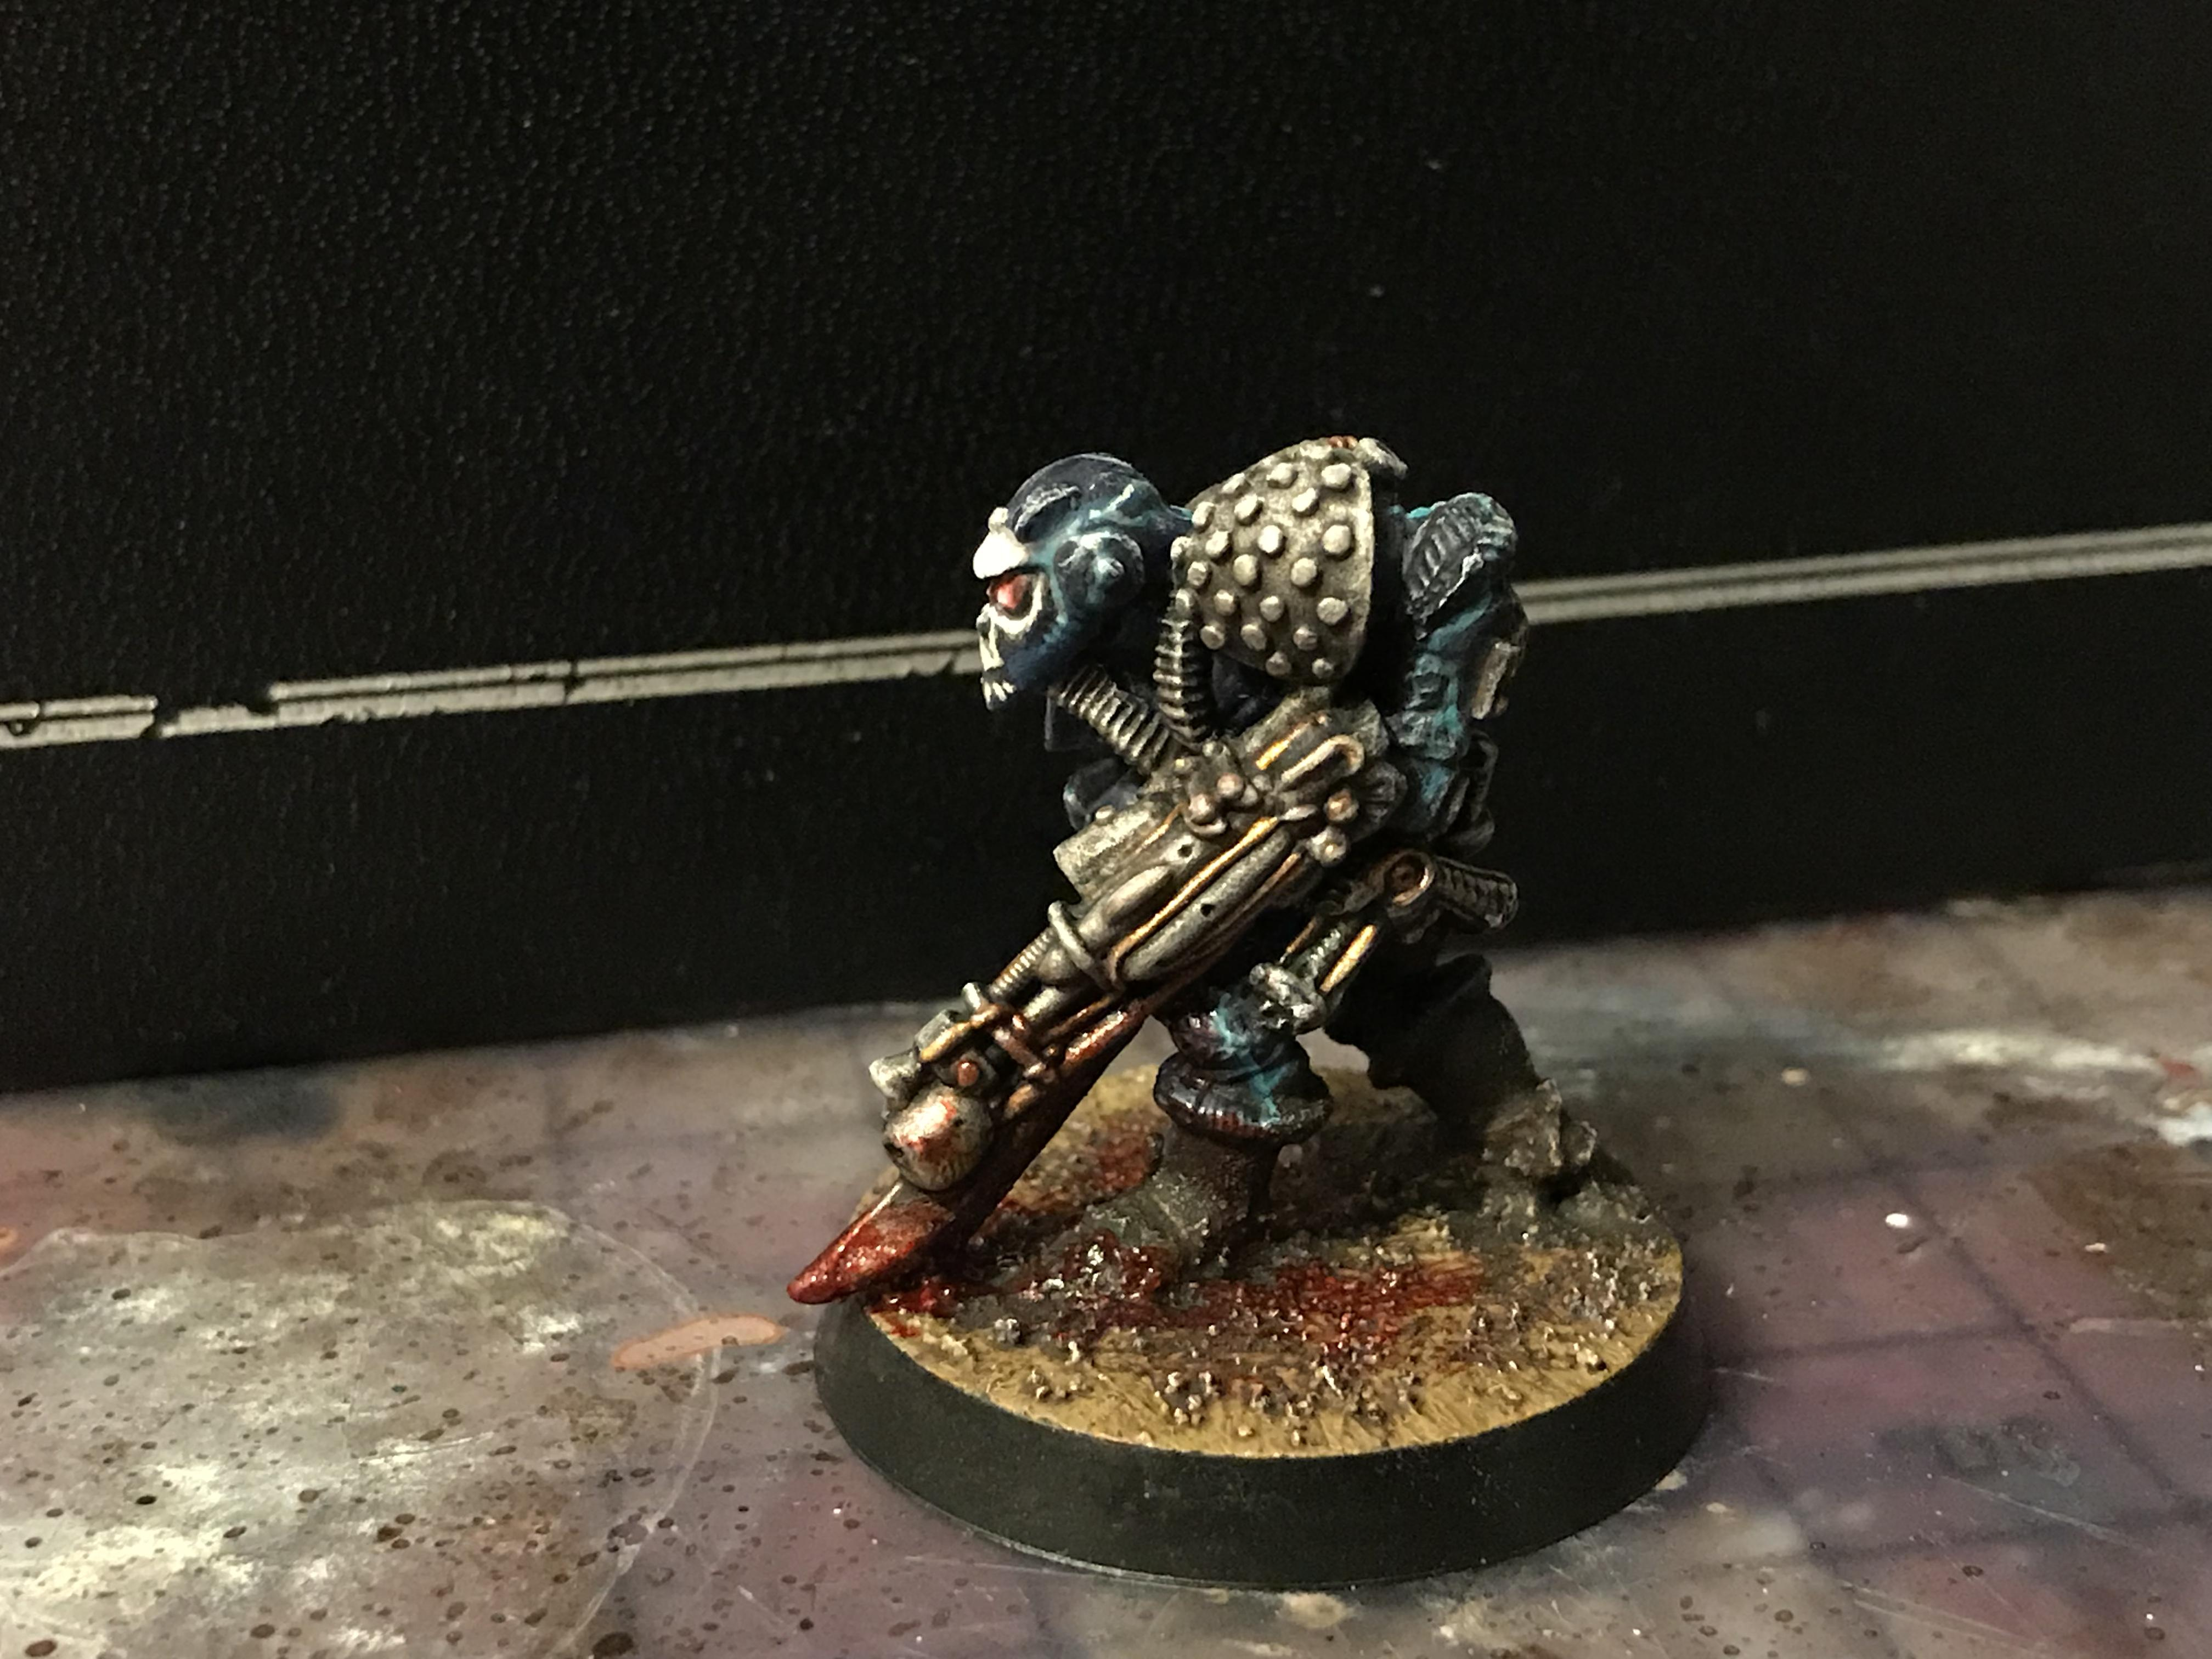 30k, Armor, Army, Assault, Astardes, Attack, Black, Blood, Chaos, Chosen, Classic, Conversion, Corrupted, Crimson, Crusade, Curze, Death, Era, Evil, Fast, Flayed, Flayer, Flesh, Great, Green, Grisly, Hand, Heresy, Heretic, Horrors, Horus, Imperial, Kaos, Kill, Killers, Kit Bash, Konrad, Le2, Legion, Legionnaire, Legionnaires, Legionnes, Legions, Lightning, Lord, Lords, Man, Mask, Murder, Murderers, Night, Night Lords, Out Of Production, Pained, Pirate, Pirates, Power, Primarch, Rage, Raiders, Raptors, Reaver, Reavers, Red, Renegade, Renegades, Retinue, Retro, Rogue, Rtb01, Saboteur, Sculpting, Shadow, Shroud, Skin, Soul, Space, Space Marines, Stalkers, Stealth, Stuff, Tactics, Team, Terror, Torture, Trader, Traitor, Traitors, Troops, Trophies, Twisted, Veteran, Vile, Violence, Violent, Warhammer 40,000, Warhammer Fantasy